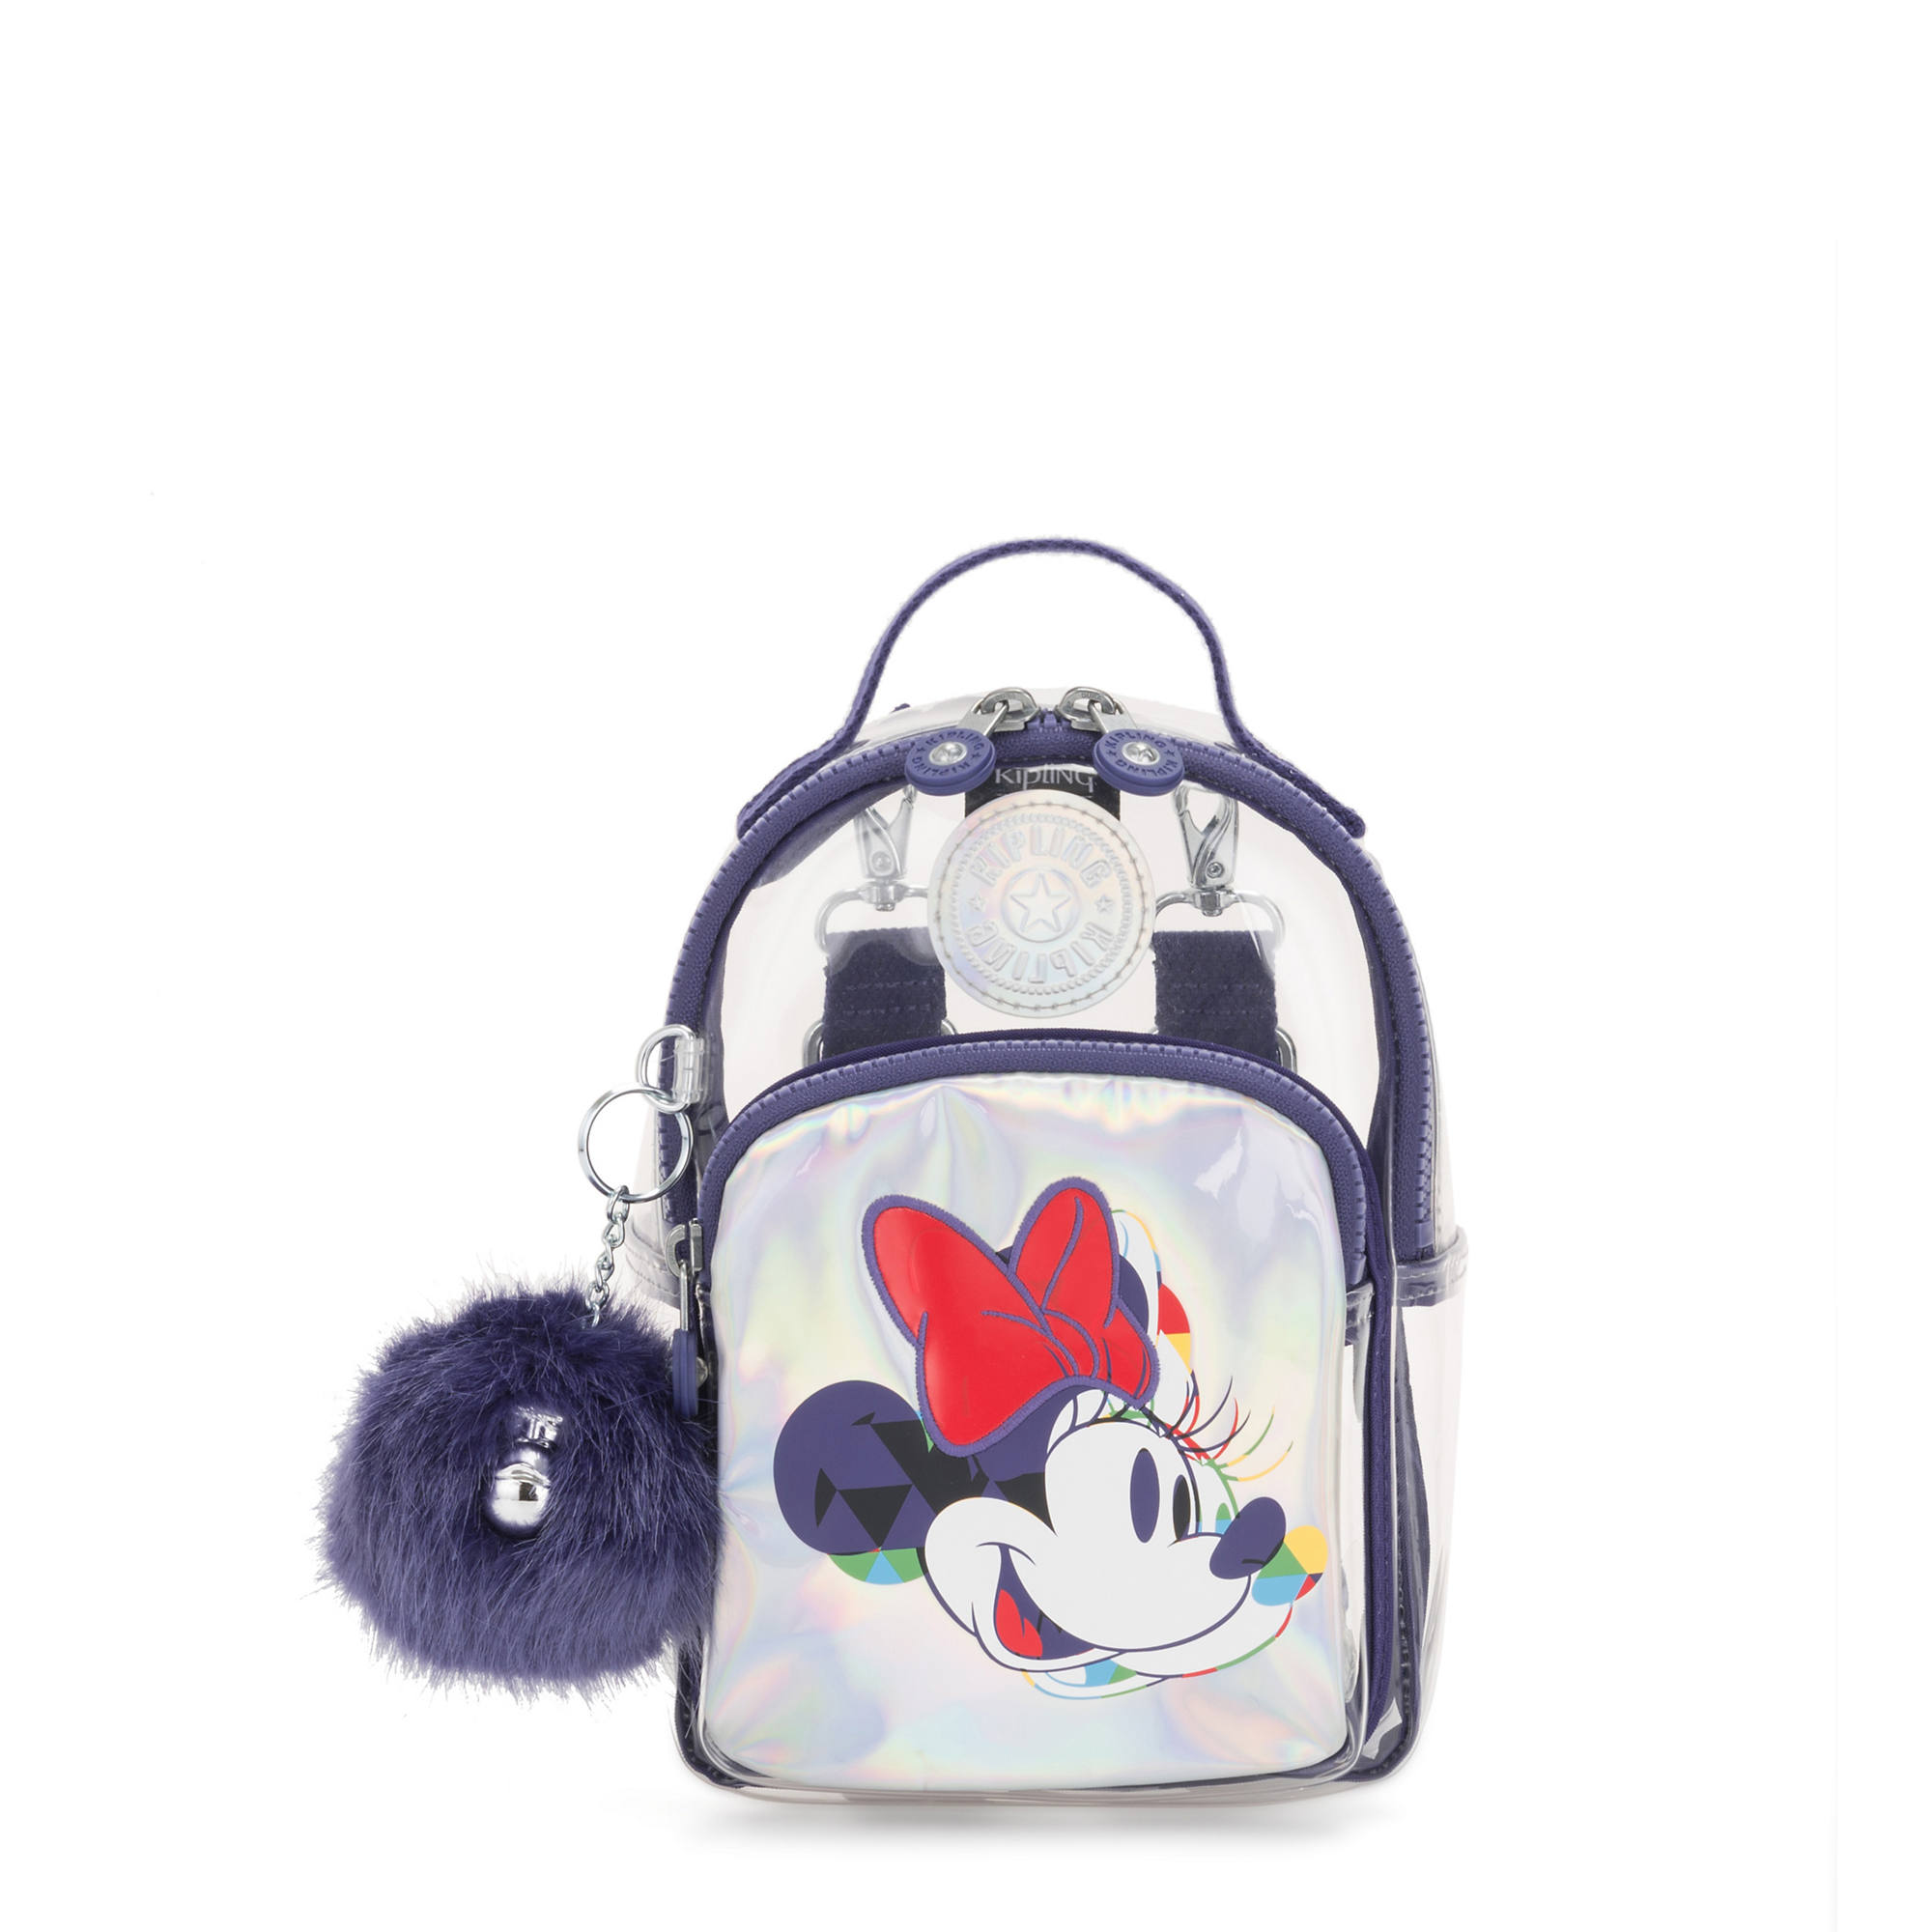 39b0f9bf88eb Disney's Minnie Mouse and Mickey Mouse 3-In-1 Alber Convertible Mini Bag  Backpack